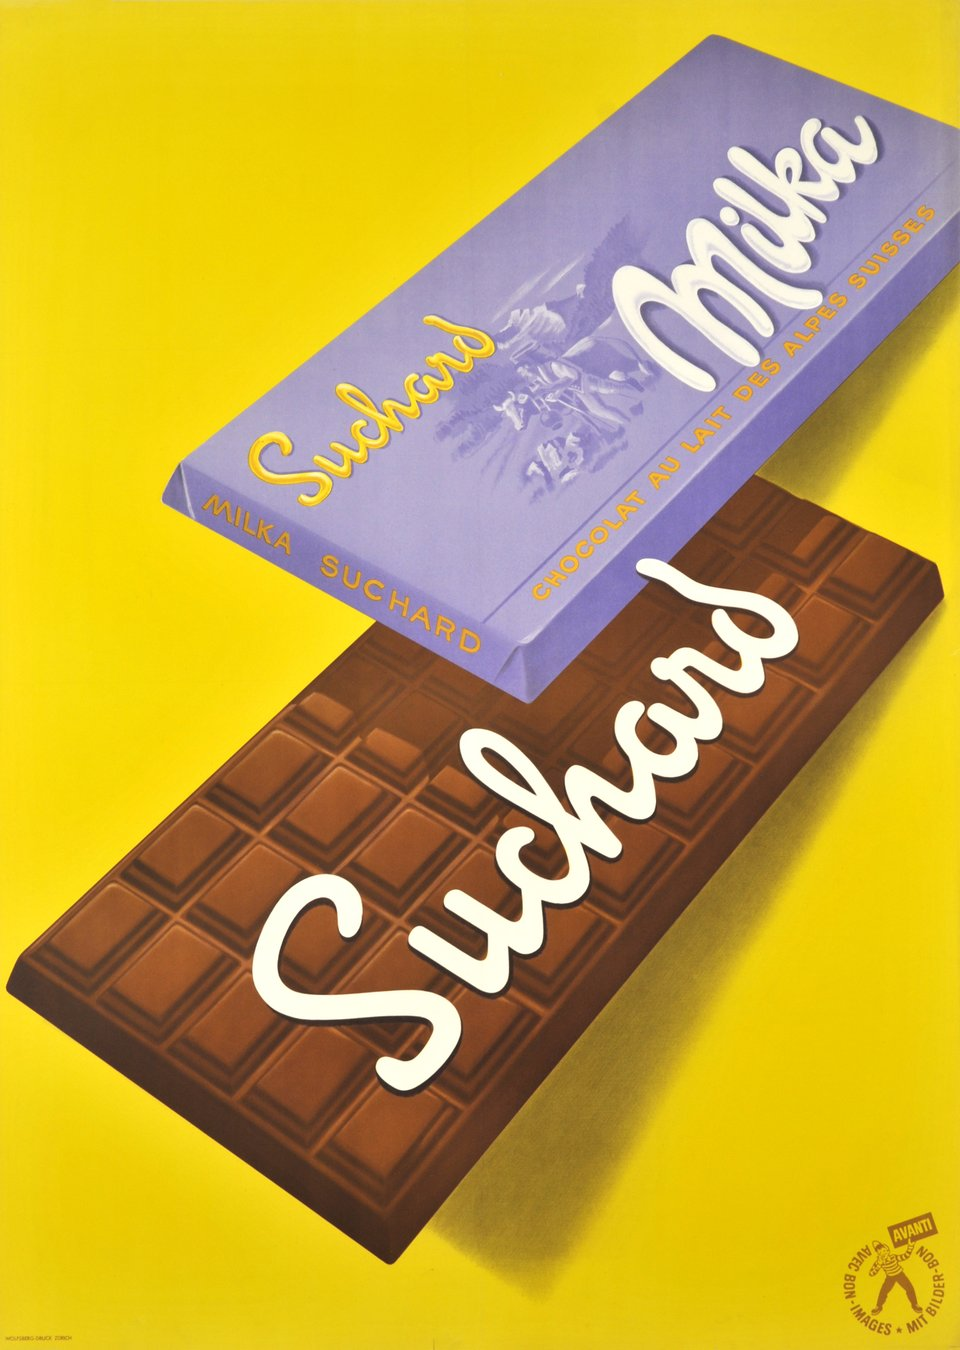 Suchard, Milka – Vintage poster – Paul O. ALTHAUS – 1950